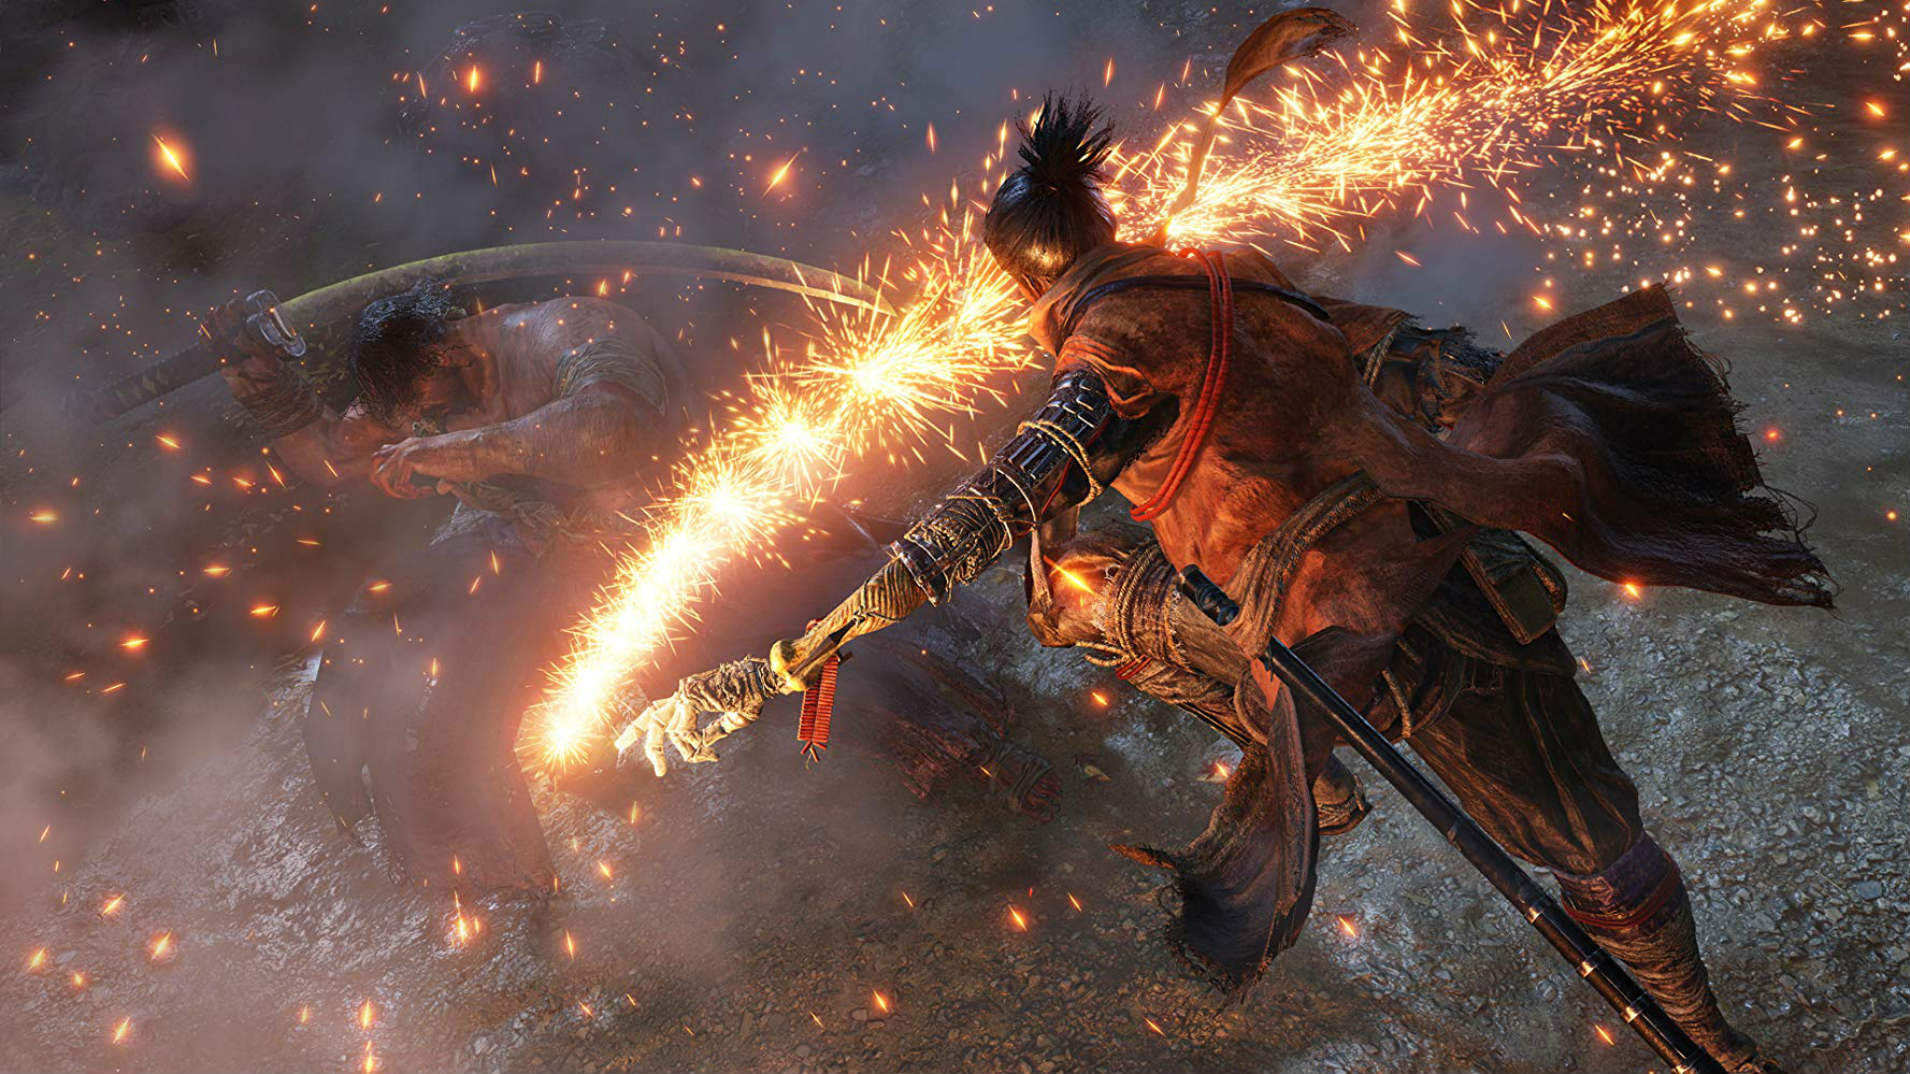 Sekiro: Shadows Die Twice Gameplay Overview